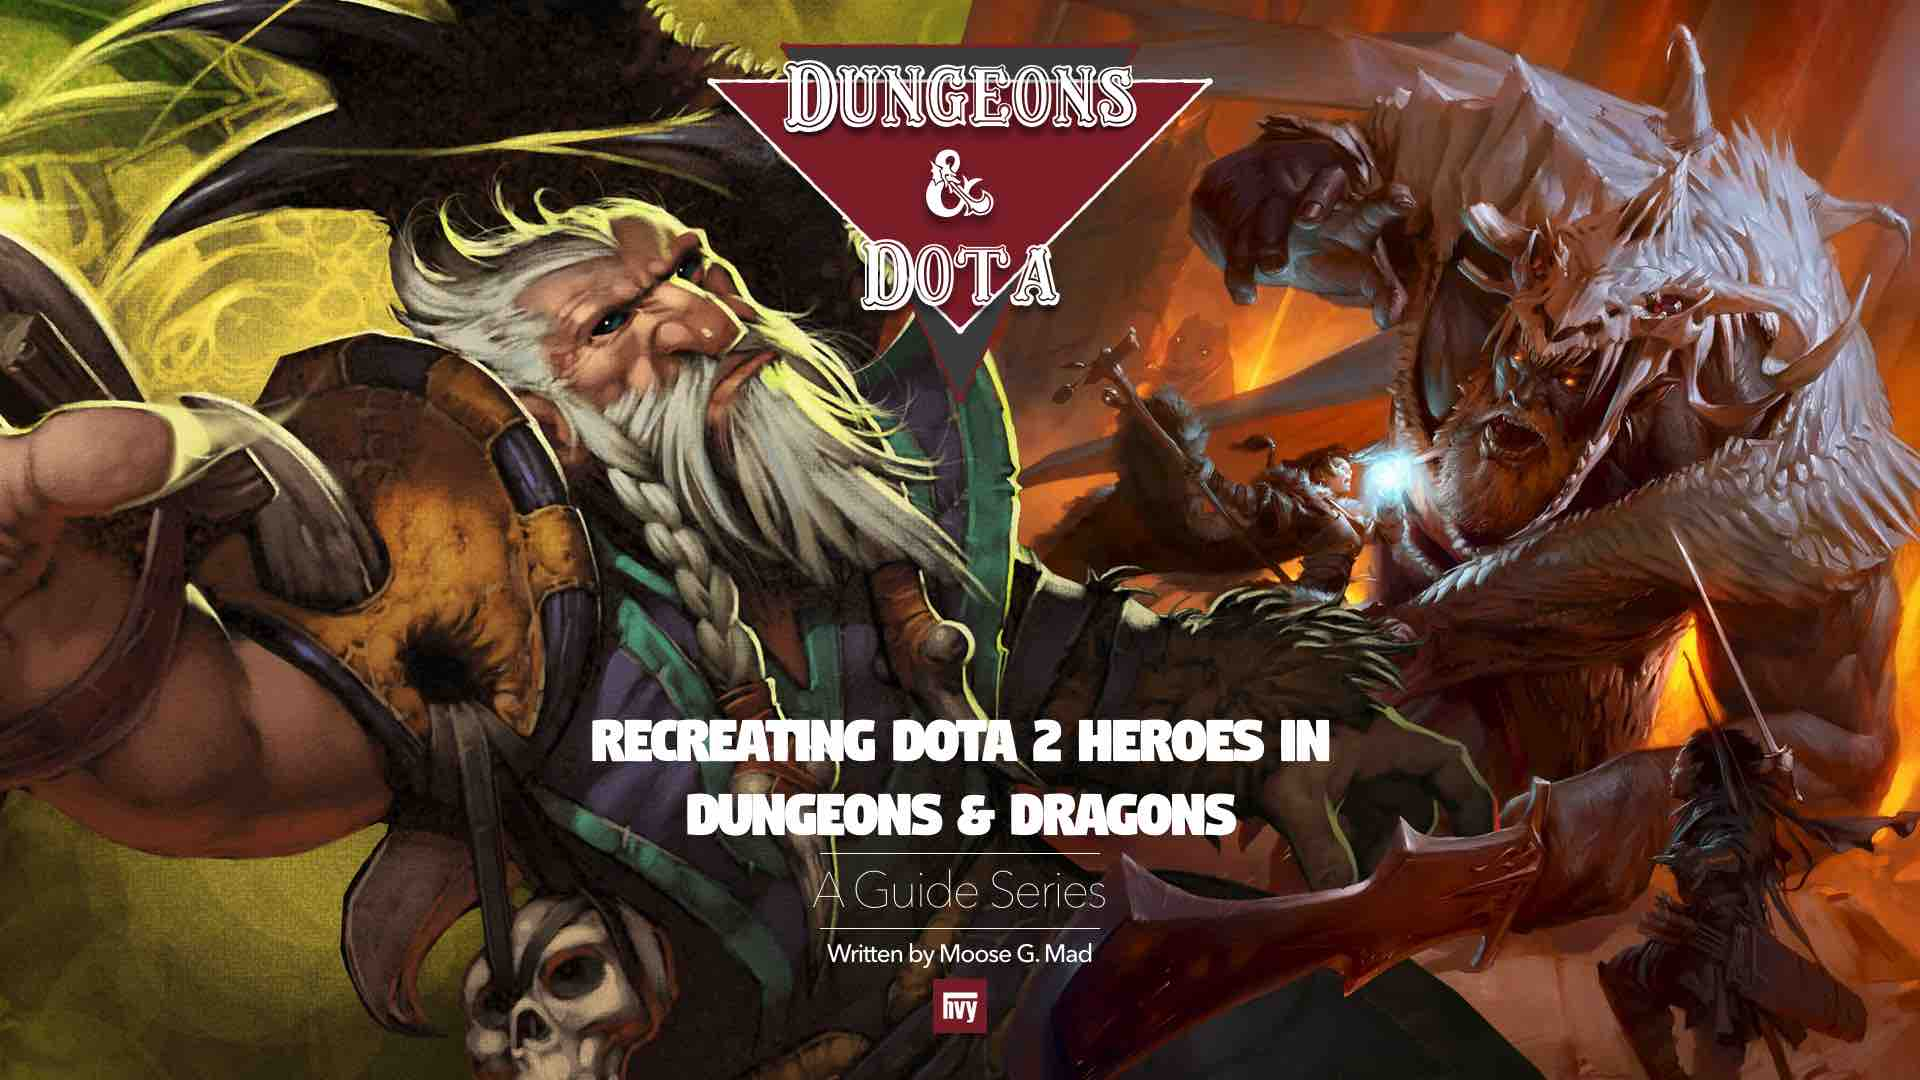 Dungeons and DotA: A Guide Series for Recreating DotA 2 Heroes in Dungeons and Dragons 5th Edition